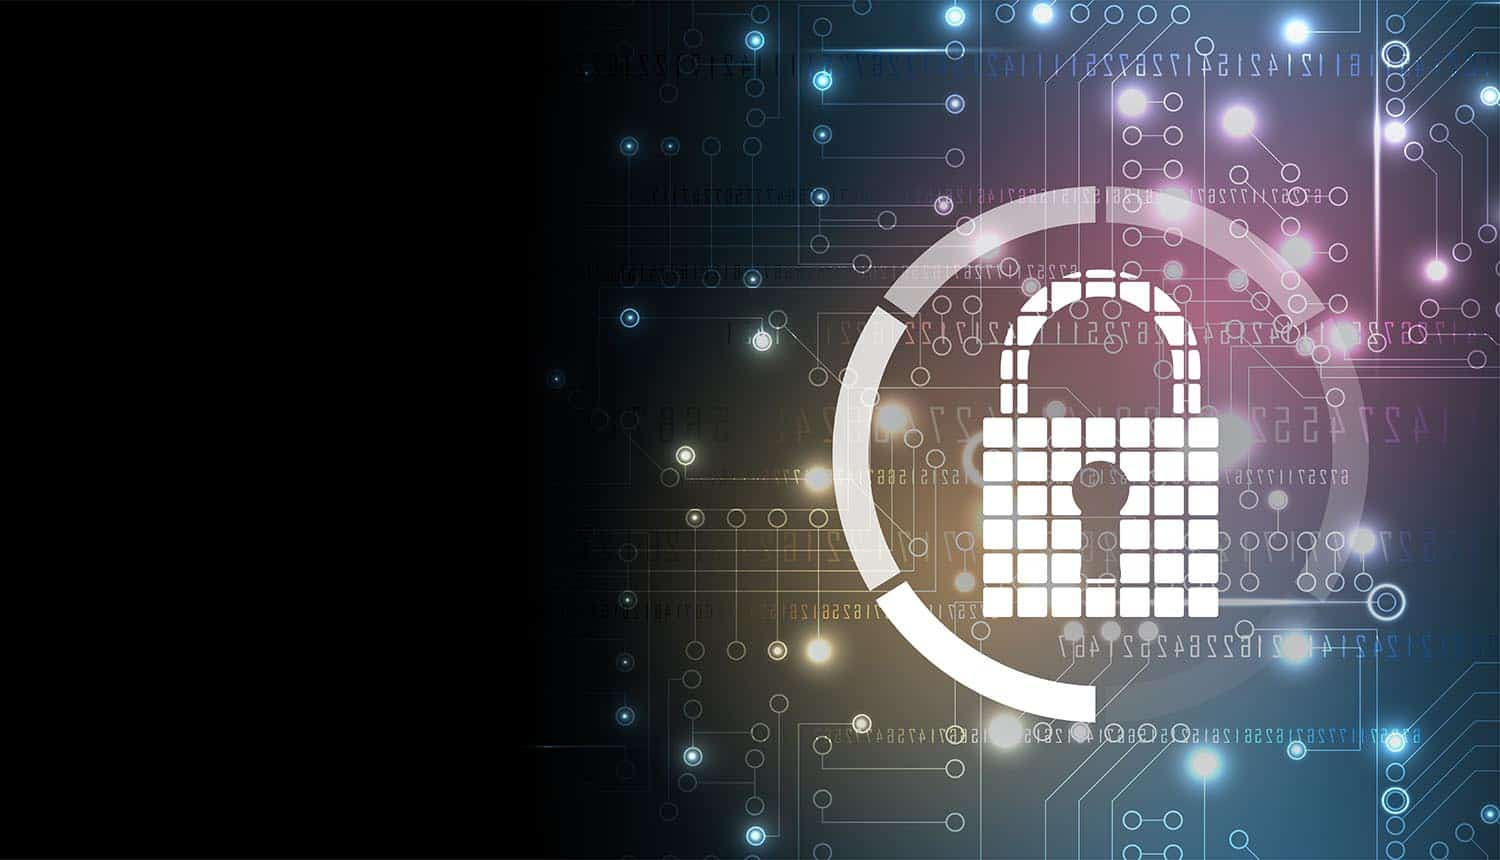 Lock against digital background showing need for cybersecurity investments